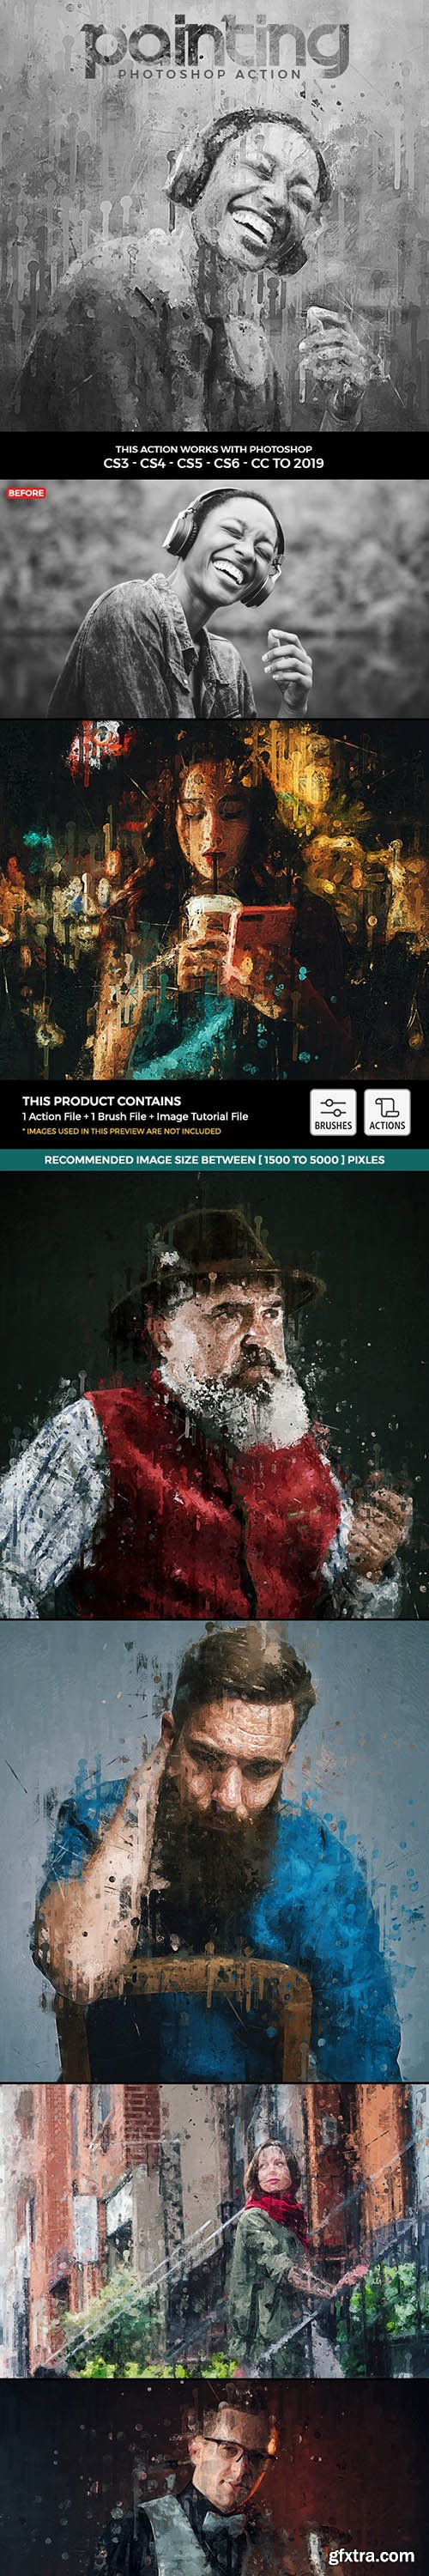 GraphicRiver - Painting Photoshop Action 24913485